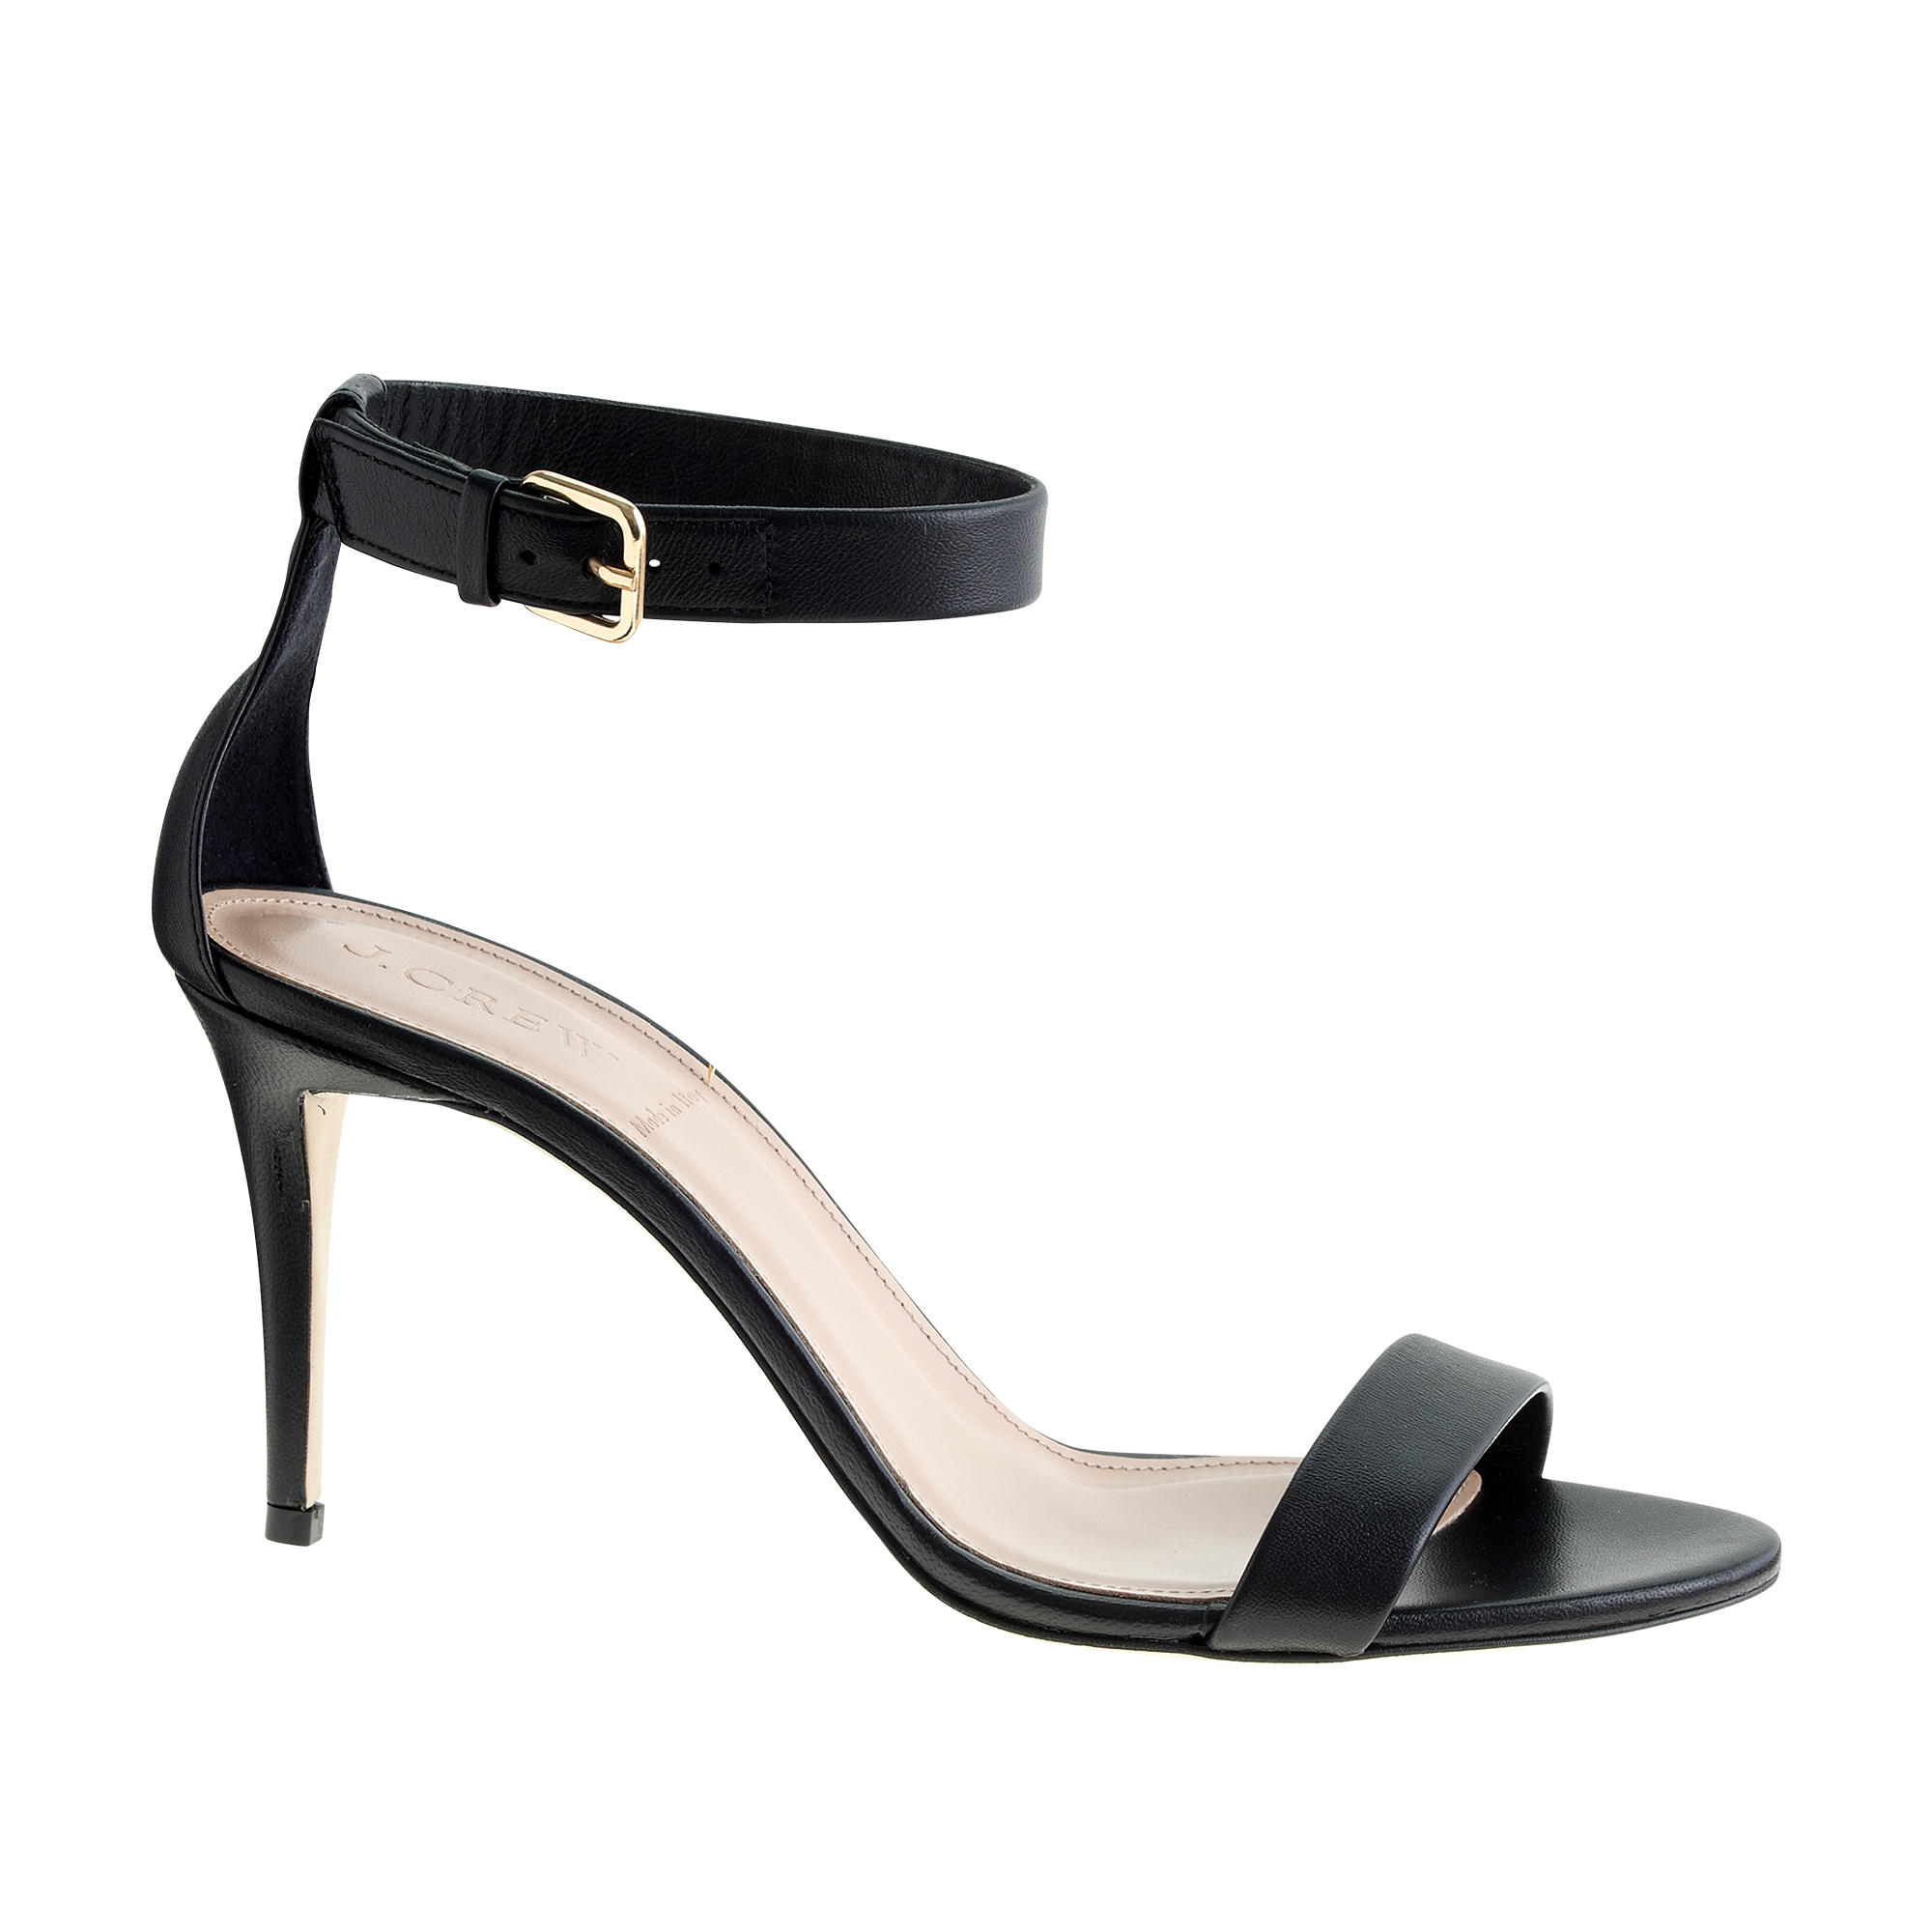 j crew high heel ankle sandals in black lyst